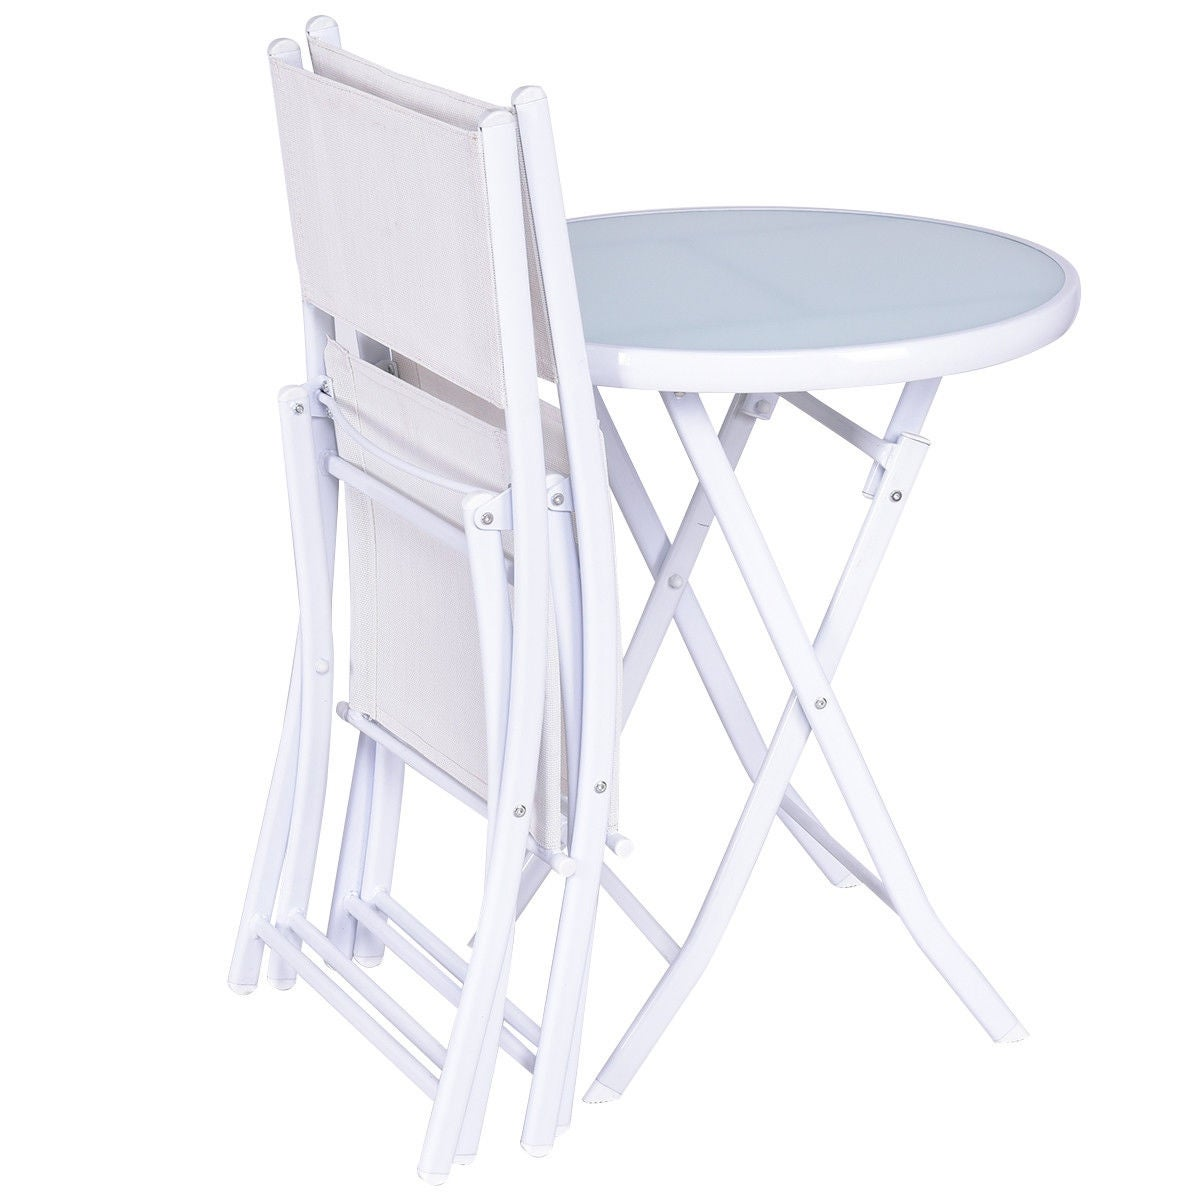 Costway 3 PCS Folding Bistro Table Chairs Set Garden Backyard Patio Furniture White - Free Shipping Today - Overstock - 24430089  sc 1 st  Overstock.com & Costway 3 PCS Folding Bistro Table Chairs Set Garden Backyard Patio ...